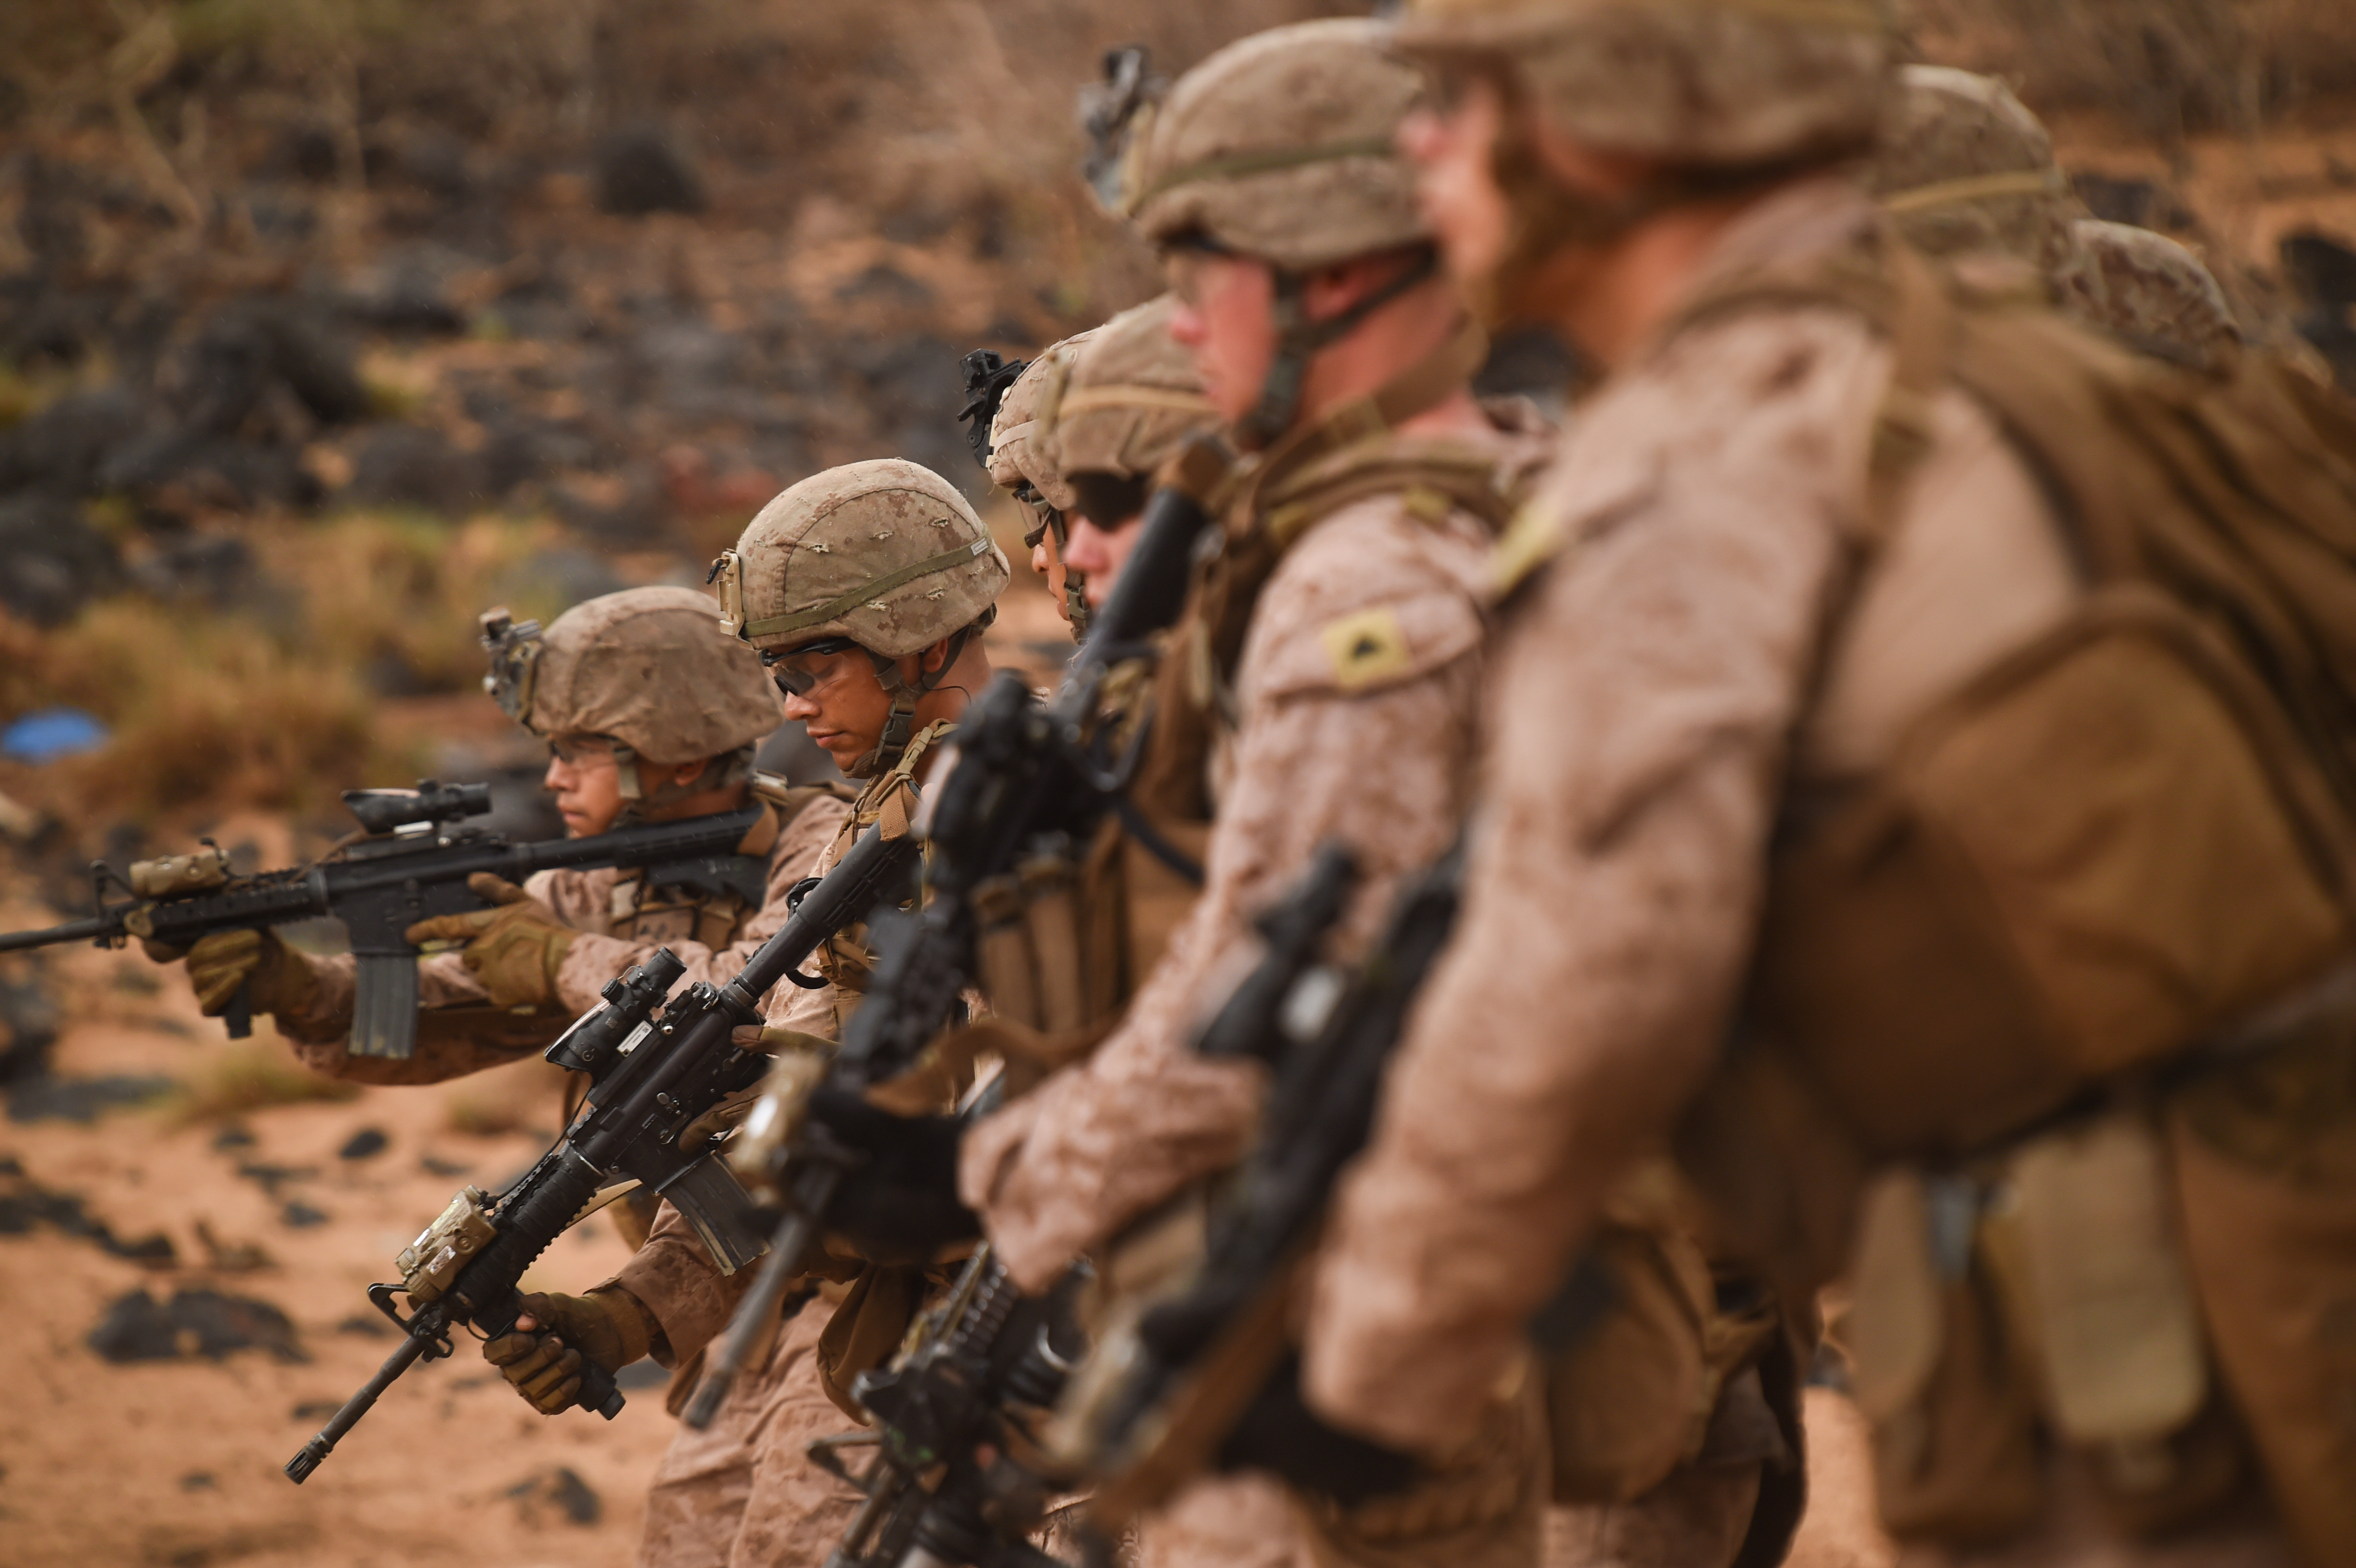 U.S. Marines with Alpha Company, 1st Battalion, 11th Marine Expeditionary Unit (MEU), prepare for the next repetition of fire during a Combat Marksmanship Program shoot, Feb. 14, 2017, at Arta Beach in Djibouti. Marines worked on engaging a target while moving and under physical stress. The time on the range allows the 11th MEU to maintain their respective skills and proficiencies. (U.S. Air National Guard photo by Staff Sgt. Penny Snoozy)